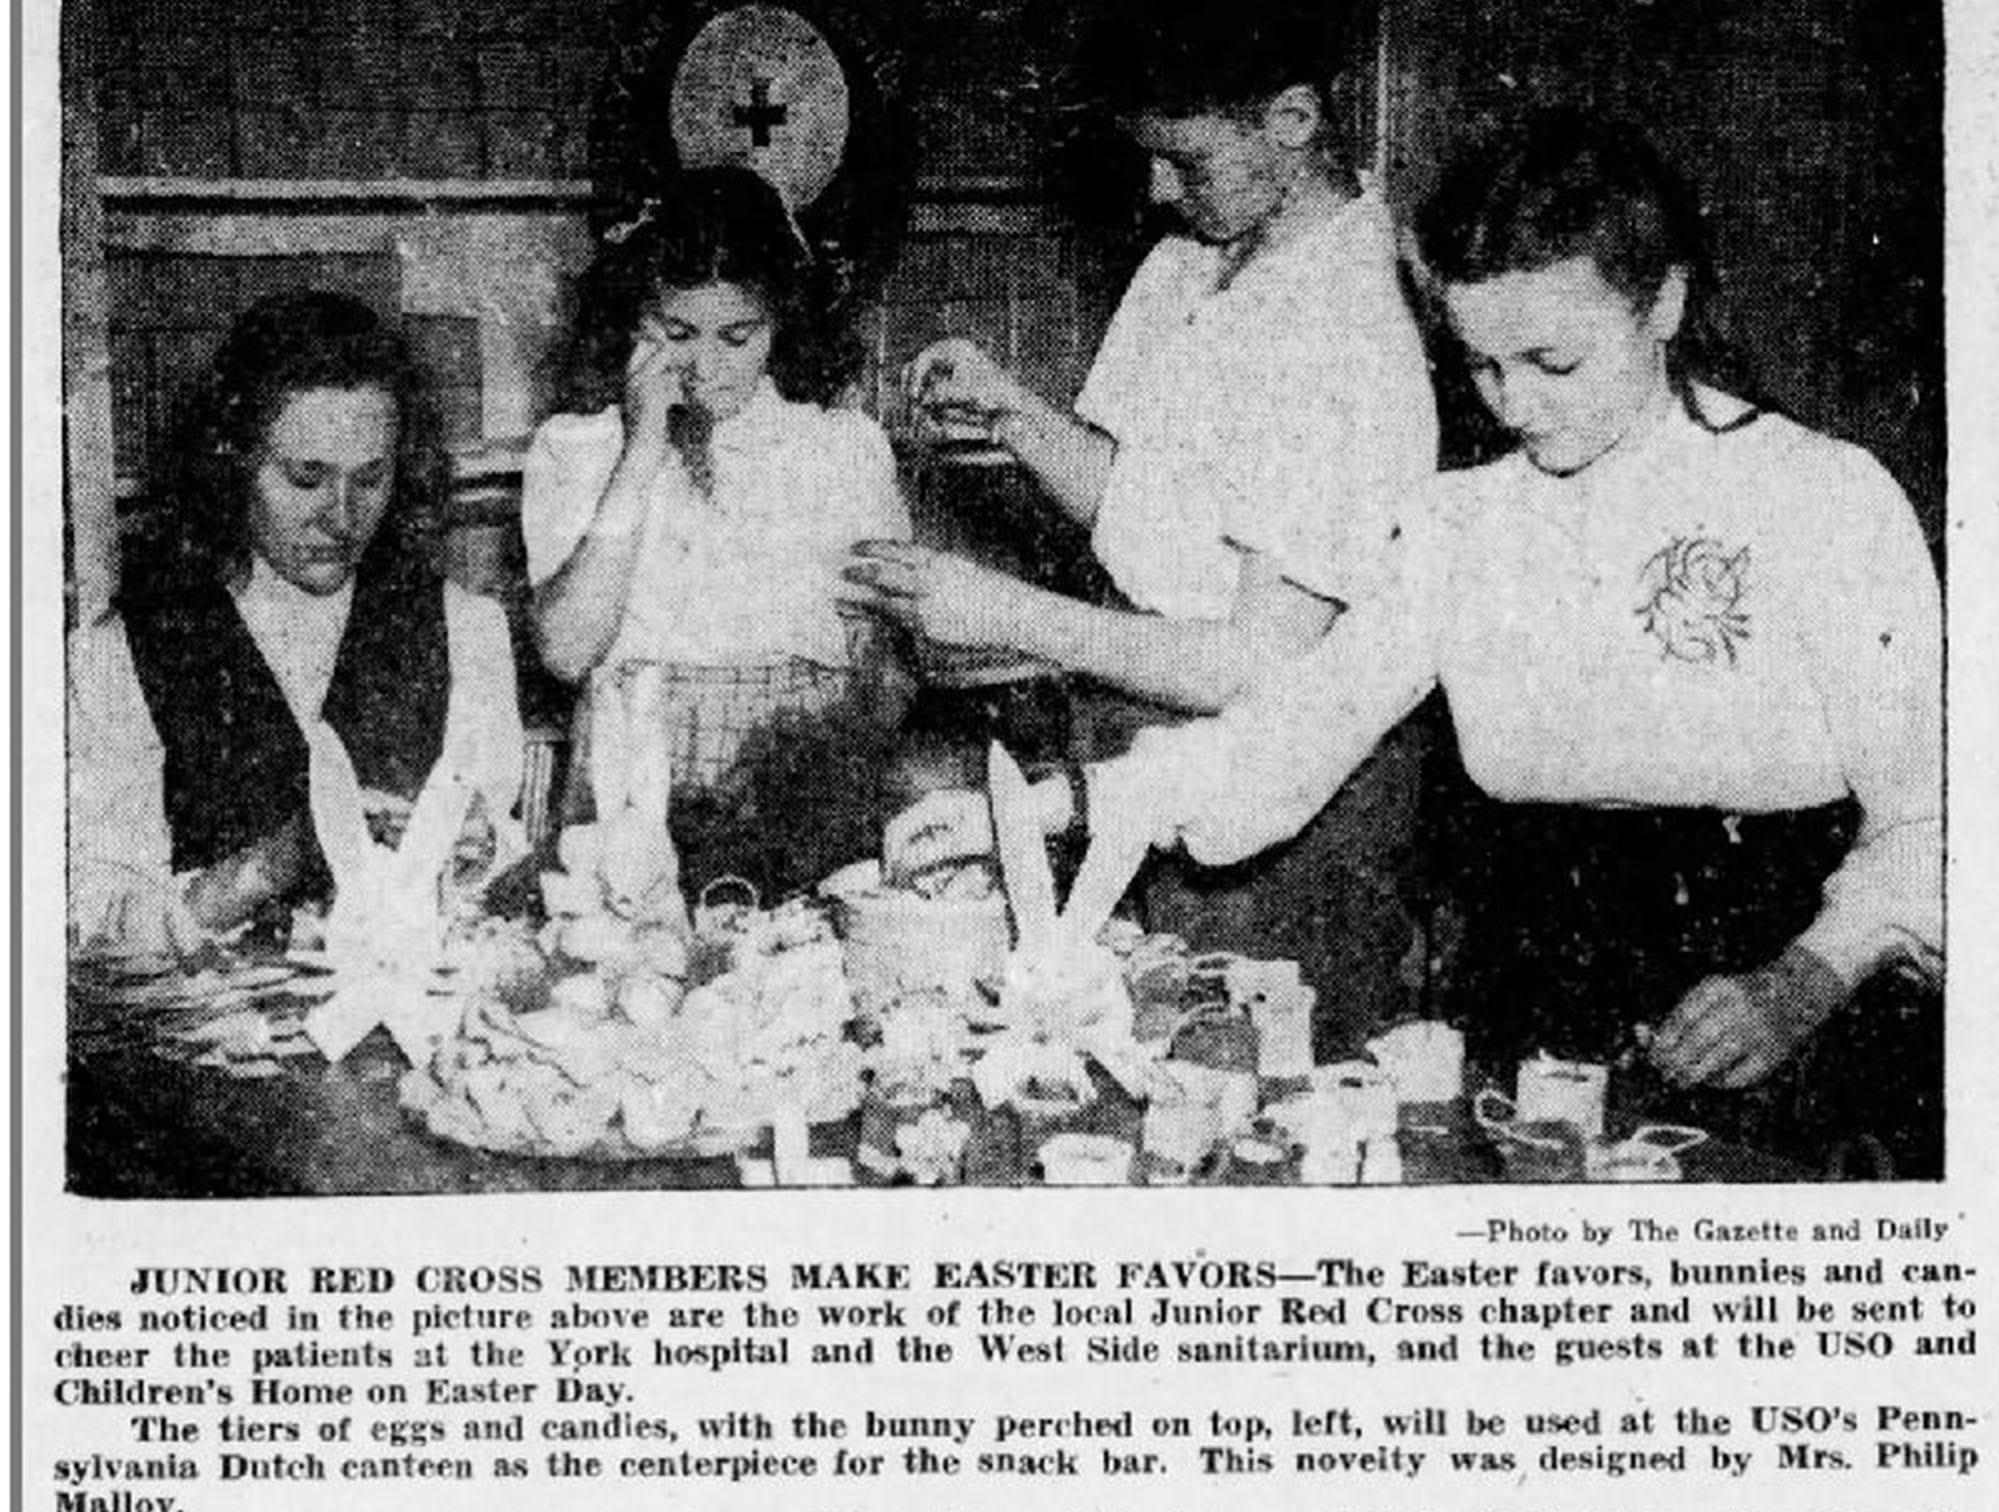 A photo from the Gazette and Daily, March 31, 1945.